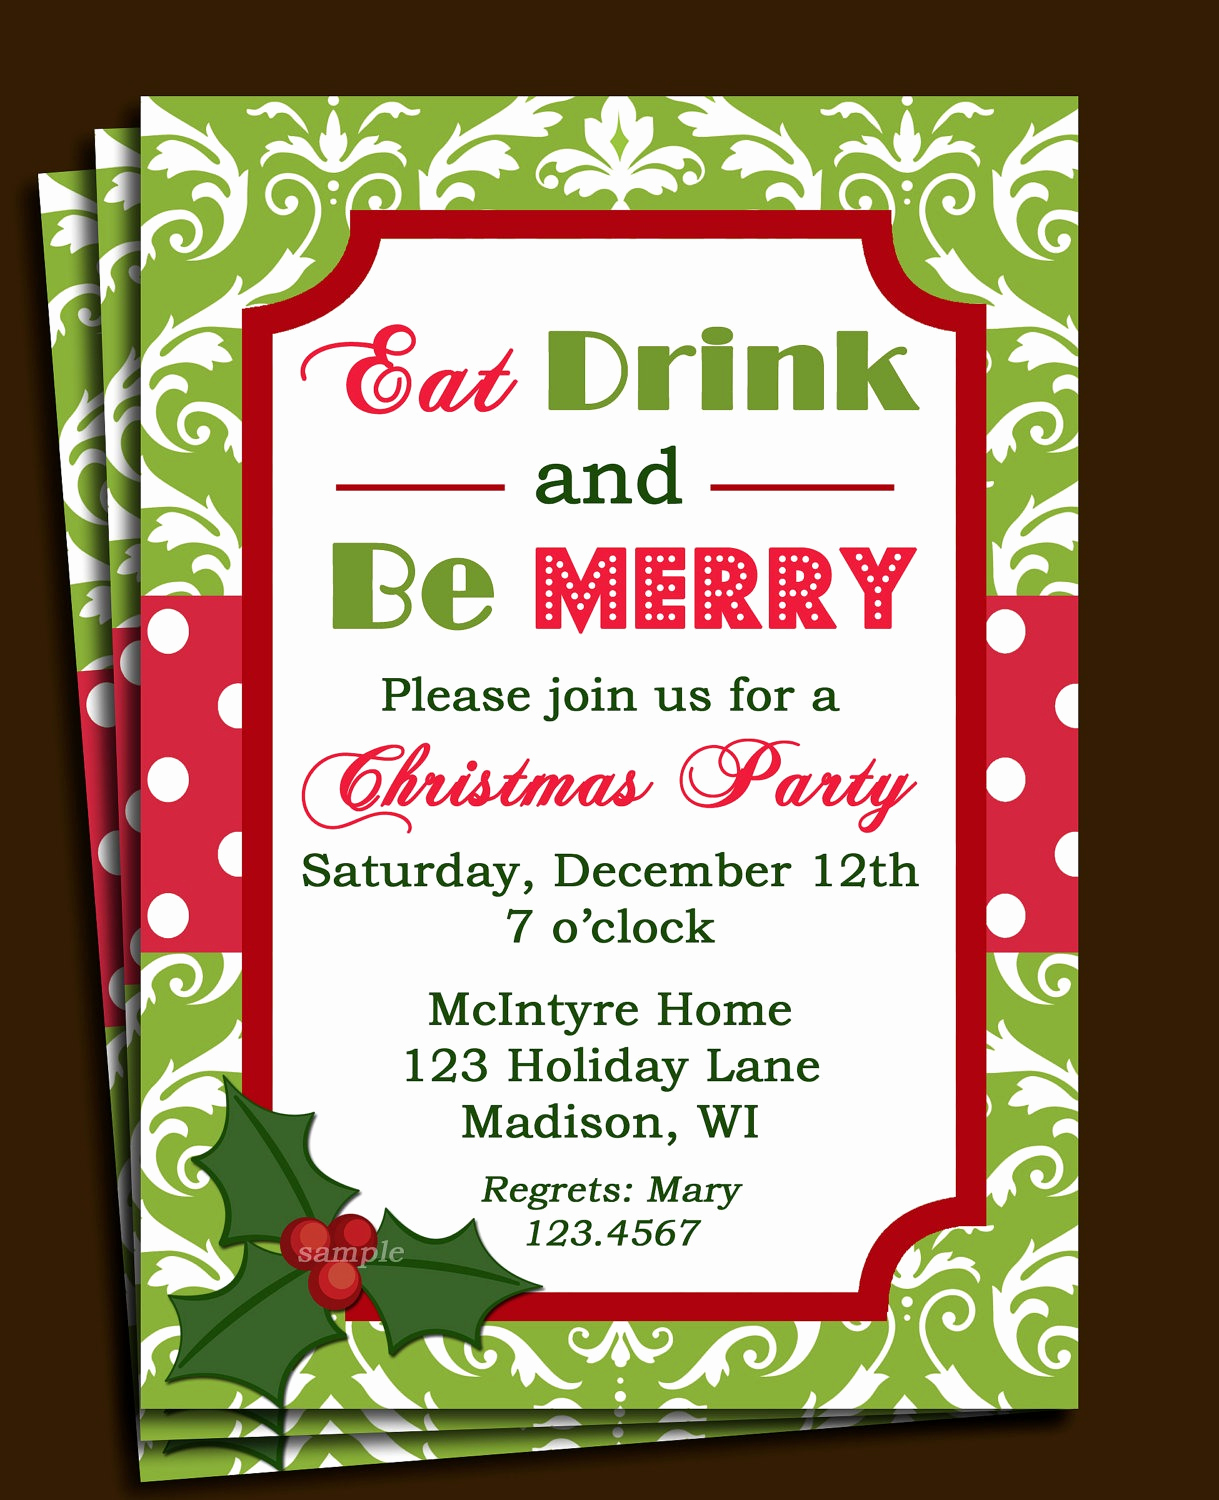 Holiday Party Invitation Ideas Fresh Christmas Party Invitation Ideas